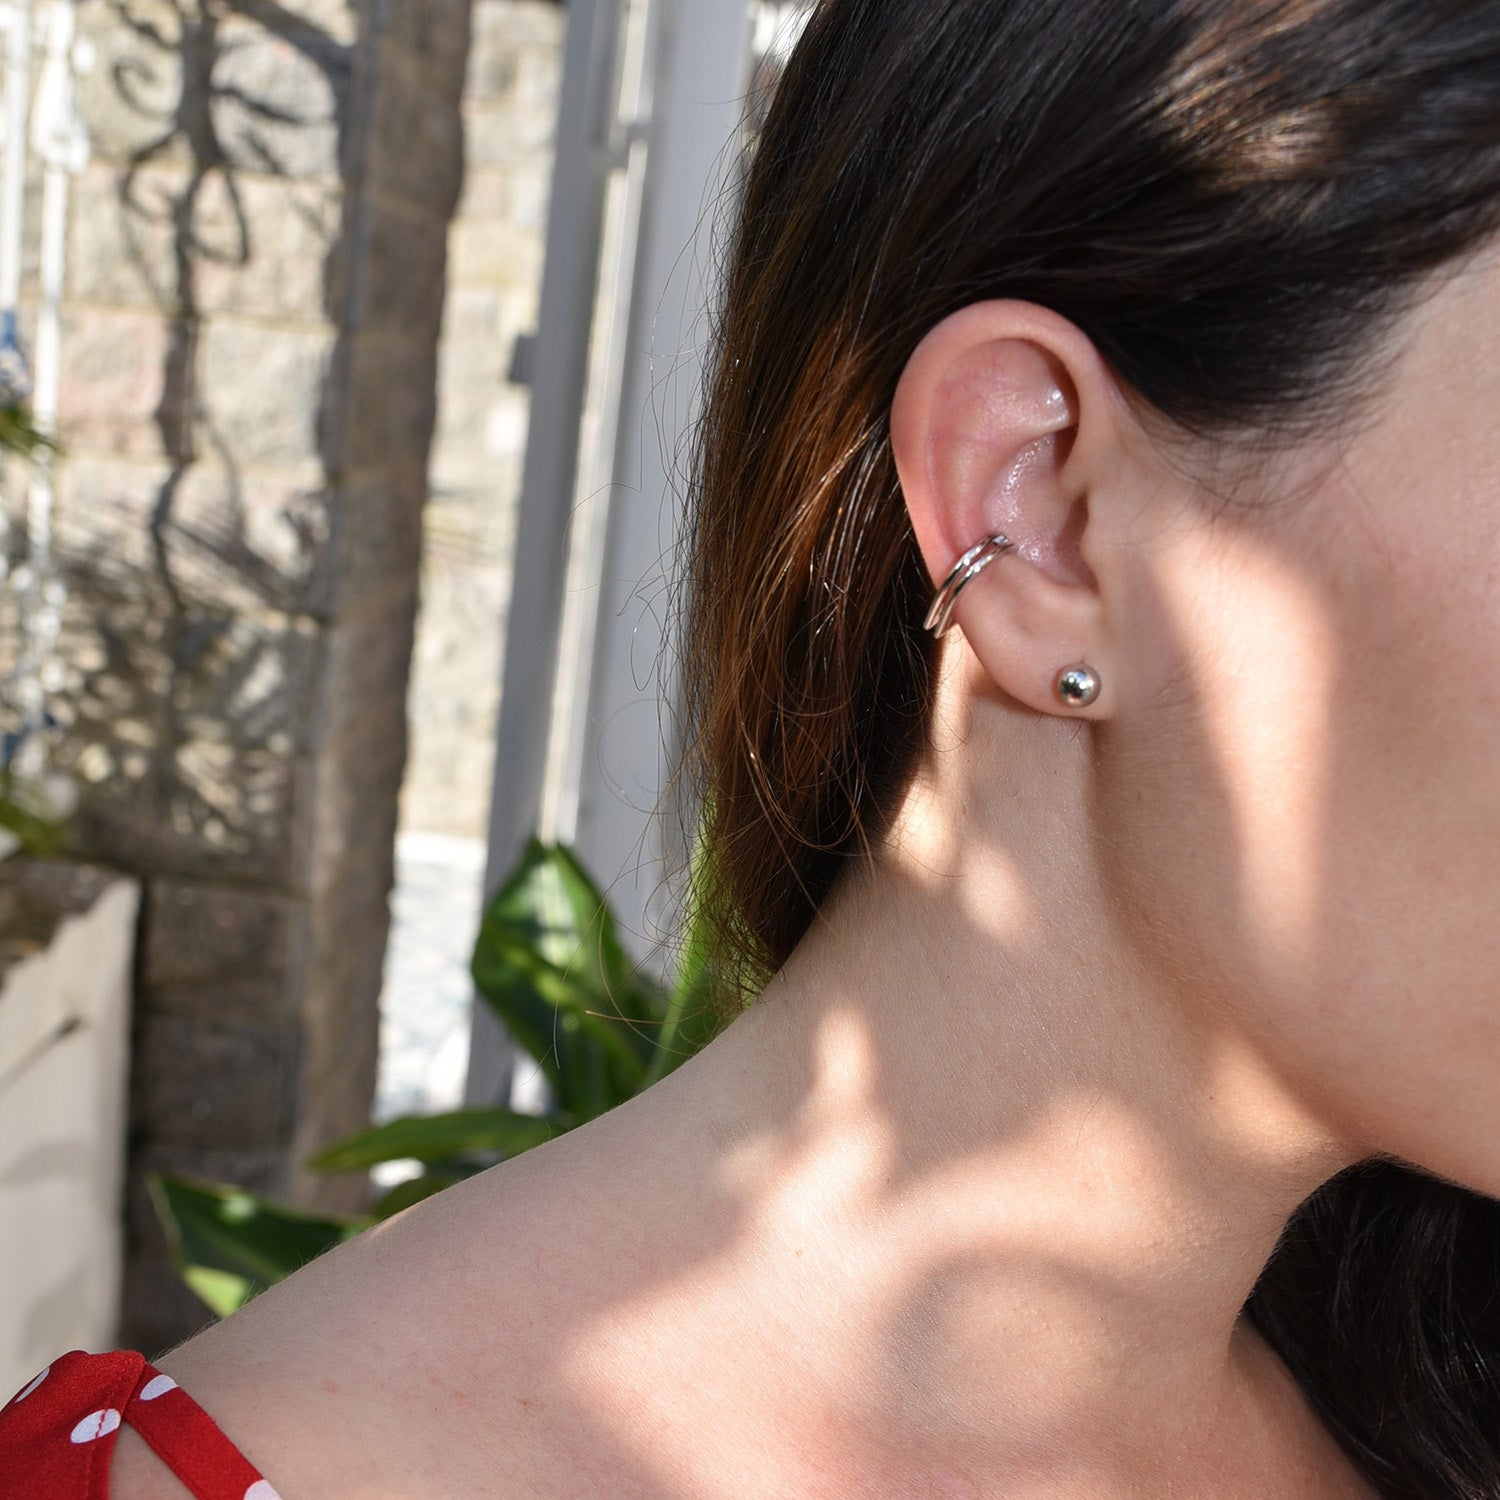 Silver Ear Cuff [Dual Double Band] - .925 Sterling - Cartilage Wrap Earring